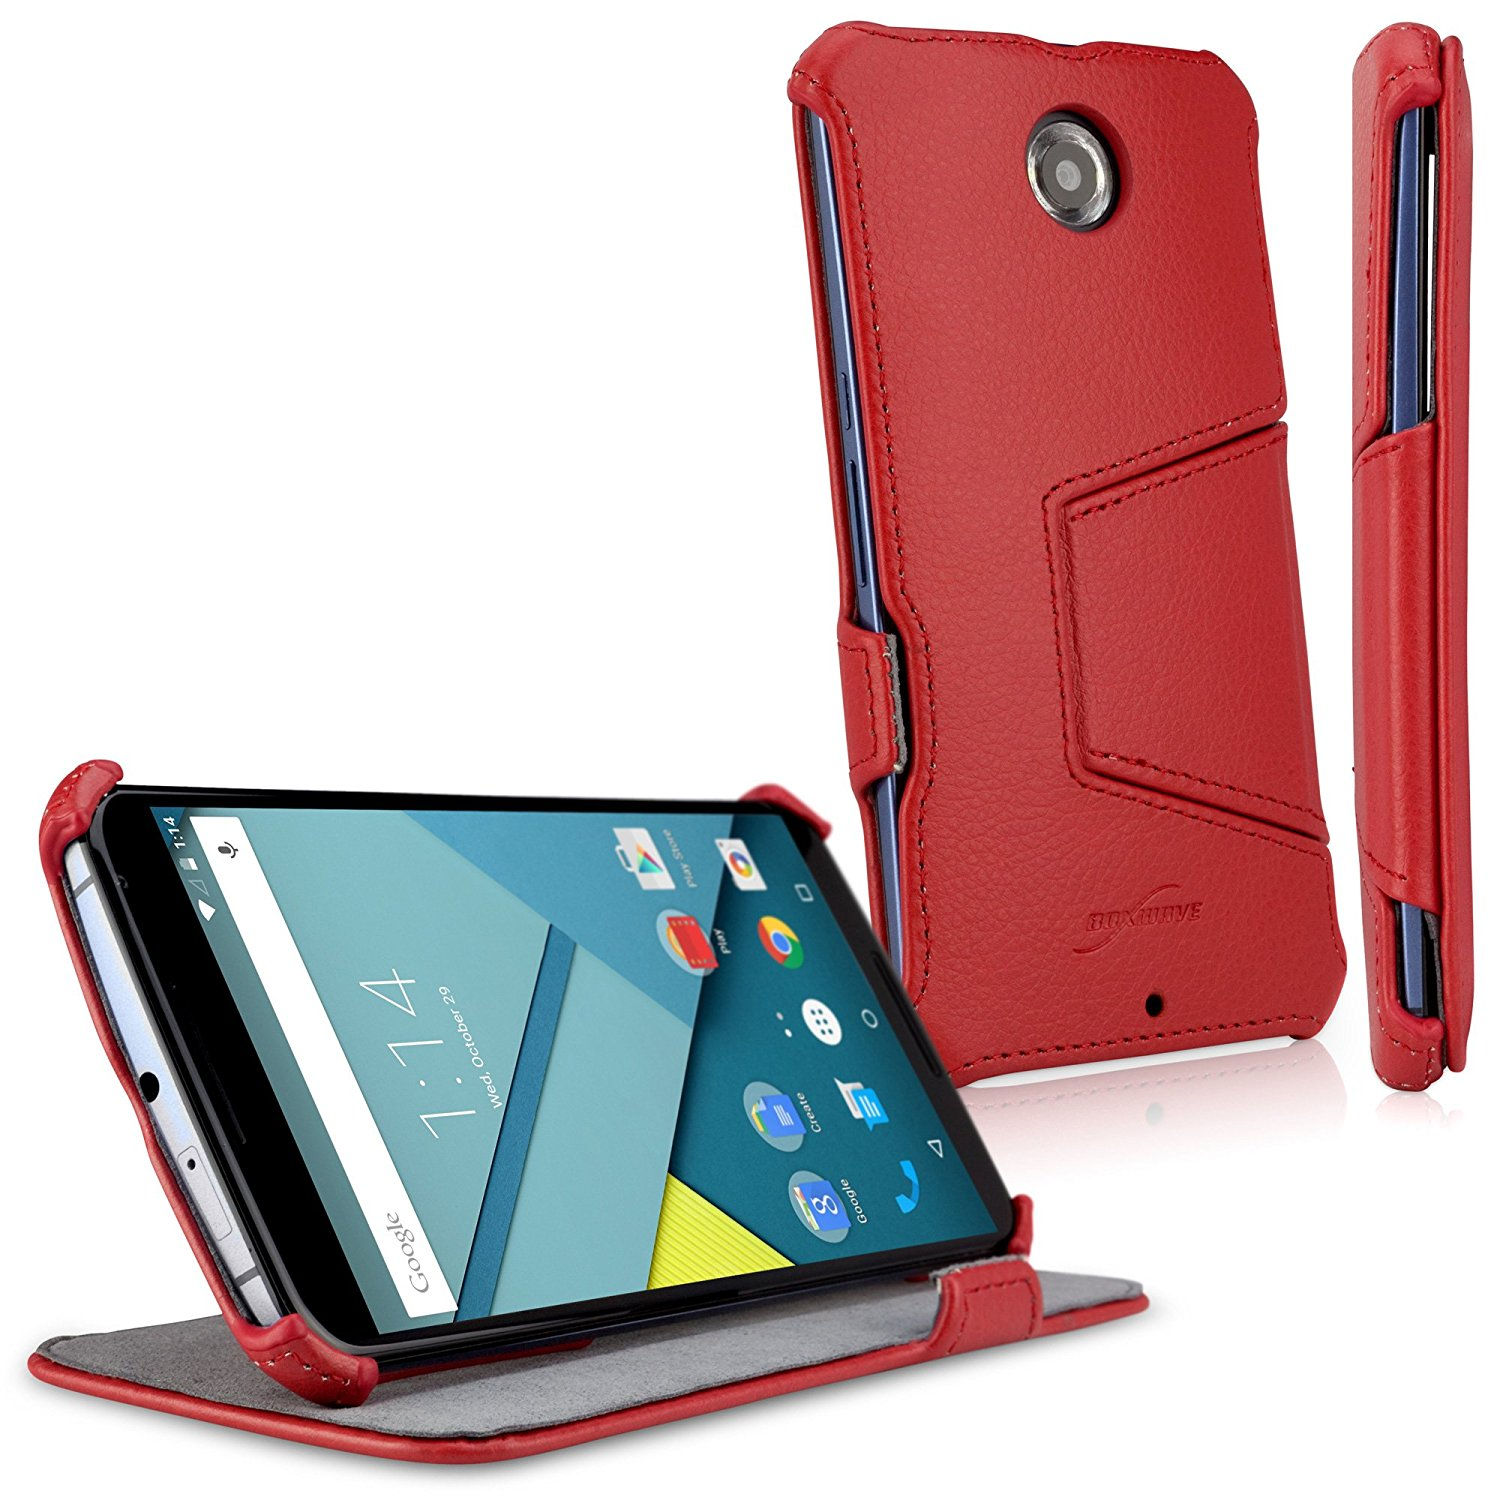 new arrival 9137b 6a826 Nexus 6 Case, BoxWave [Leather Book Jacket] Protective Synthetic Leather  Folding Folio Cover for Google Nexus 6 - Ardent Red